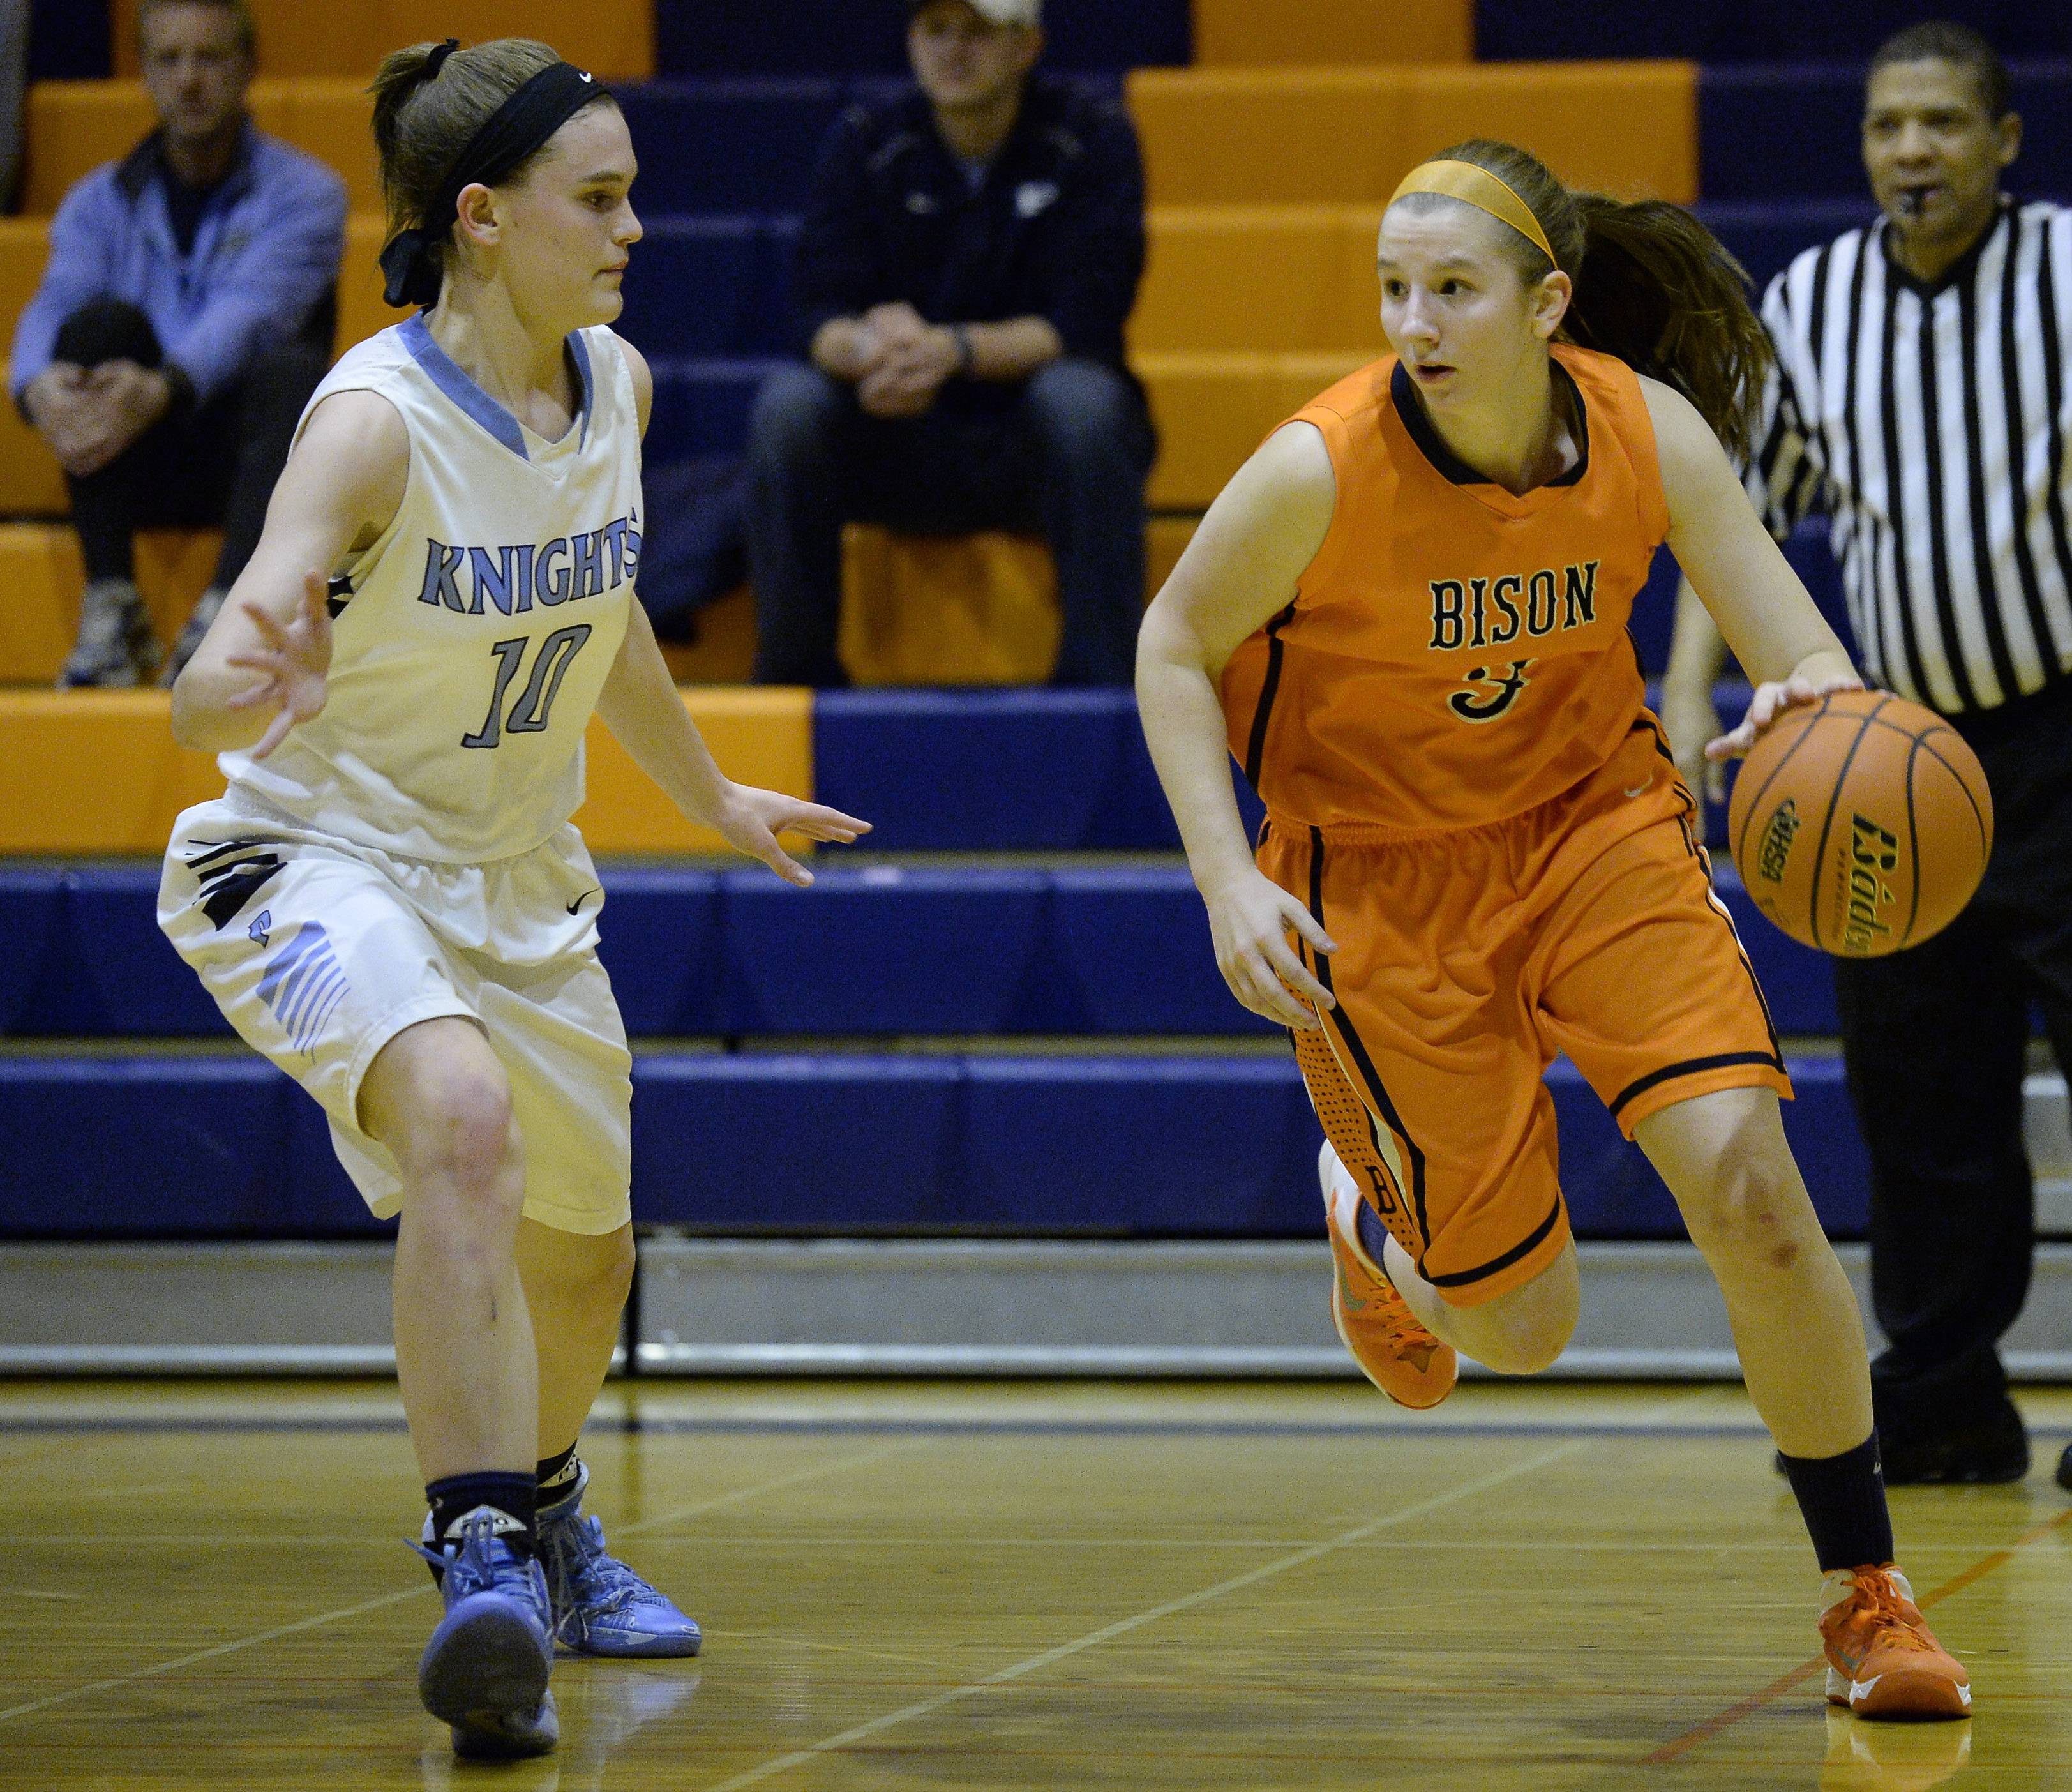 Images from Buffalo Grove vs. Prospect in the Buffalo Grove Class 4A girls regional championship game on Thursday, Feb. 20.